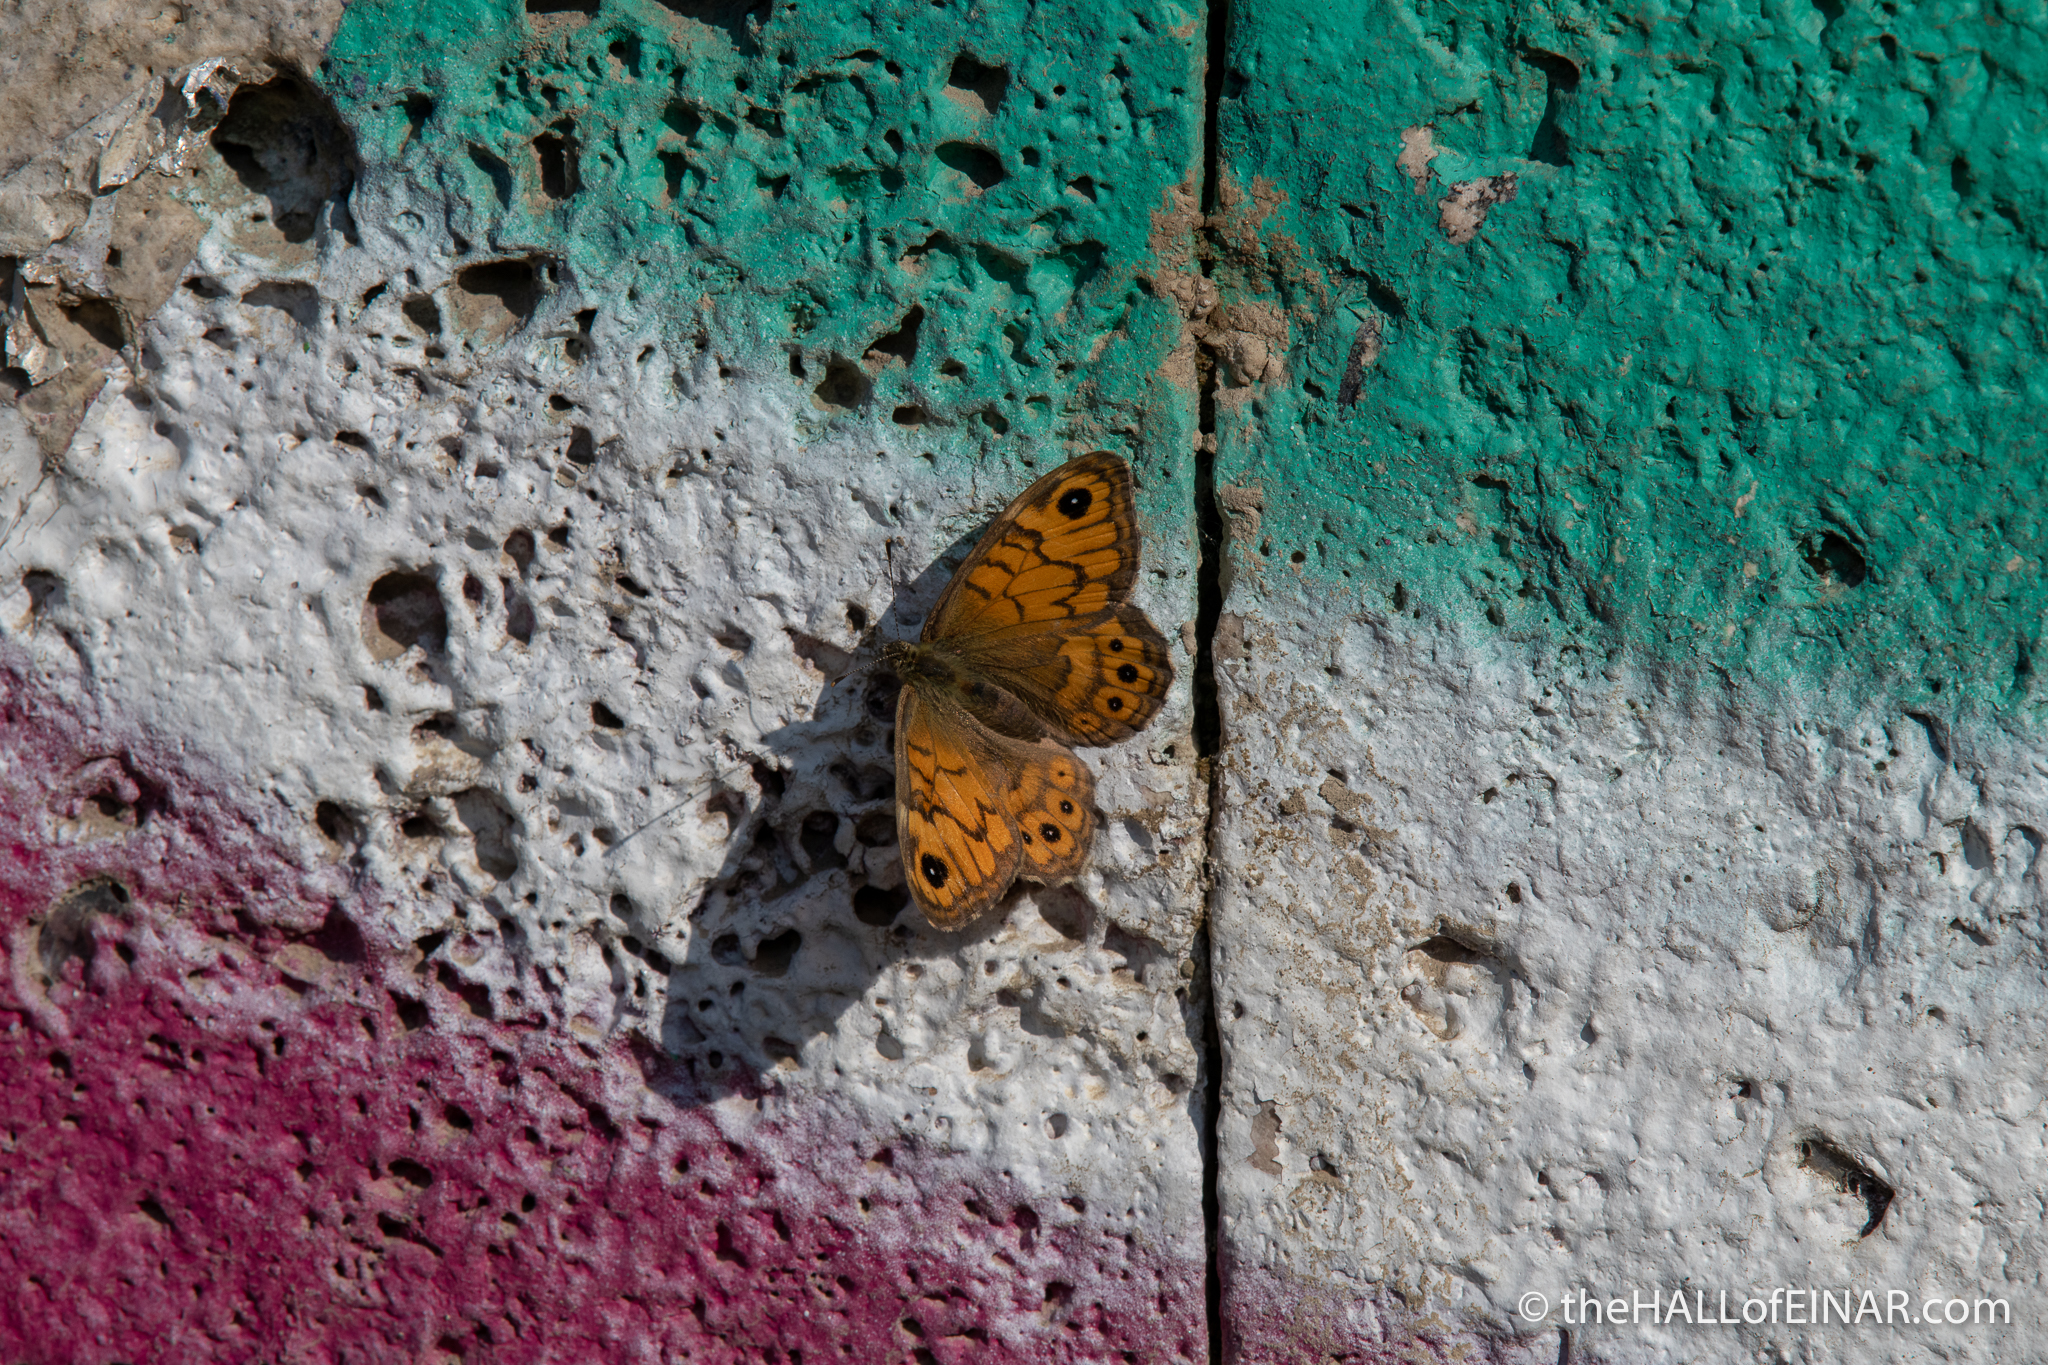 Wall Brown on the Tevere - The Hall of Einar - photograph (c) David Bailey (not the)